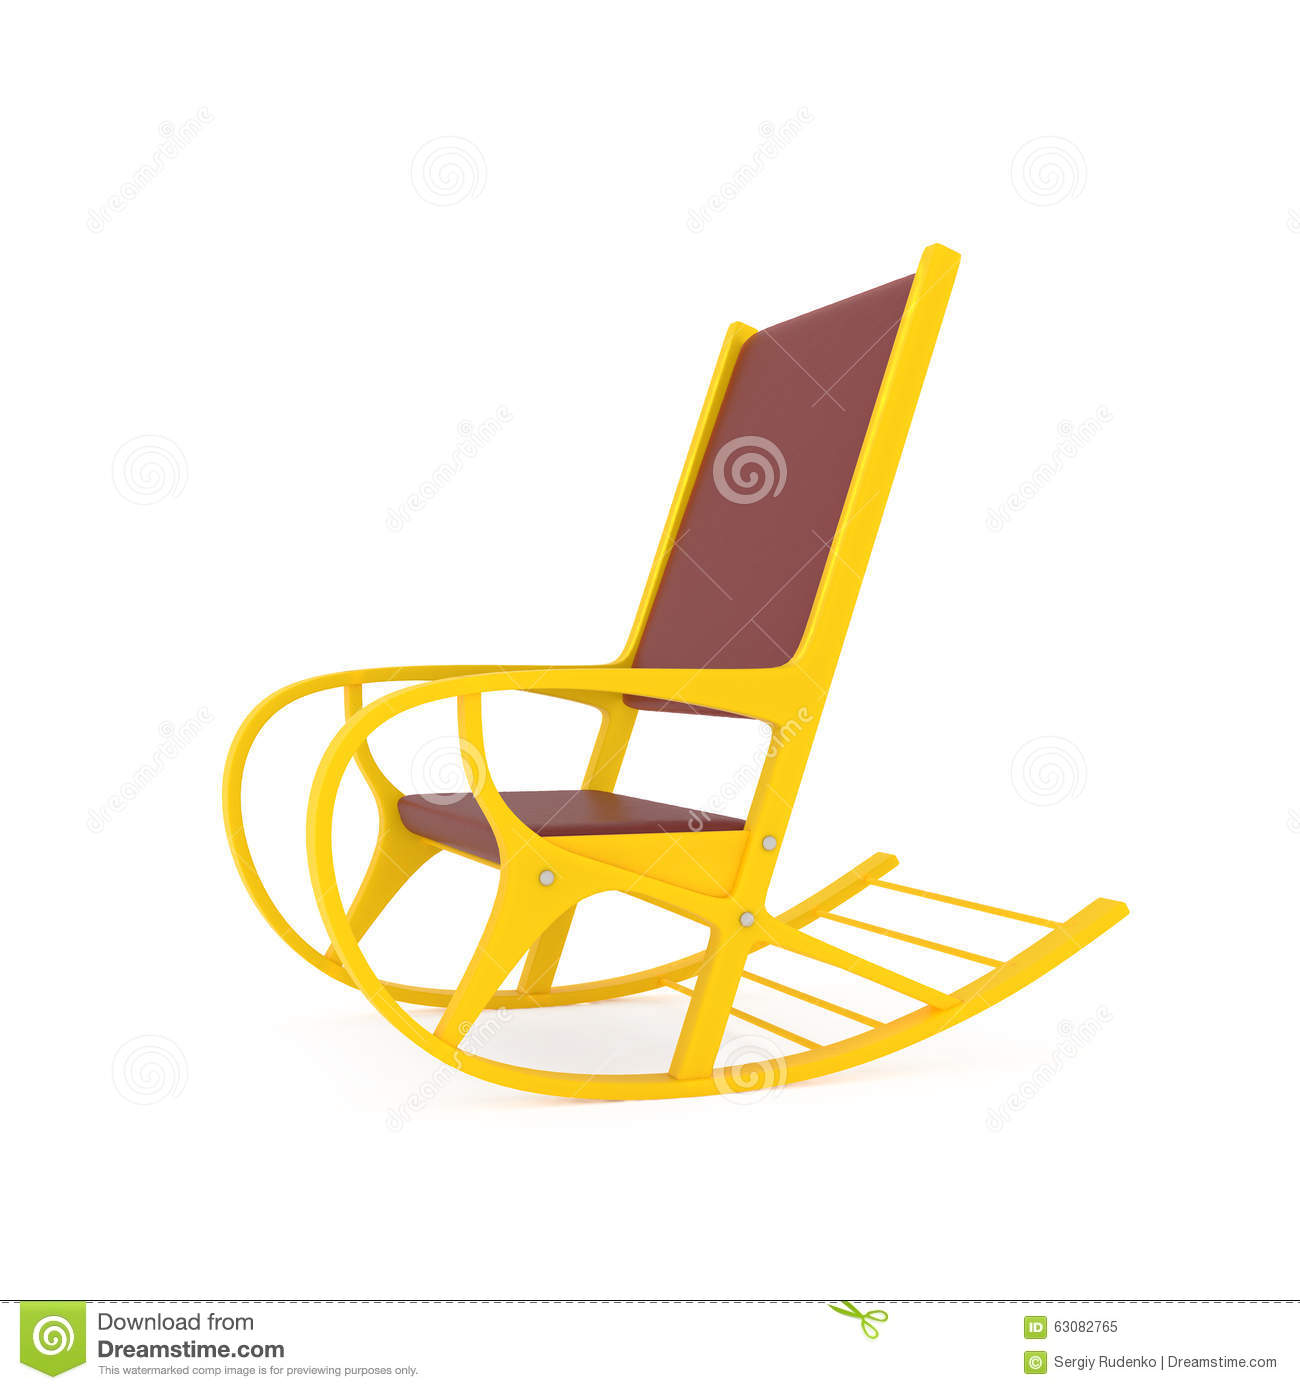 dream rocker hammock chair bamboo chairs with cushion orange rocking on white stock illustration image